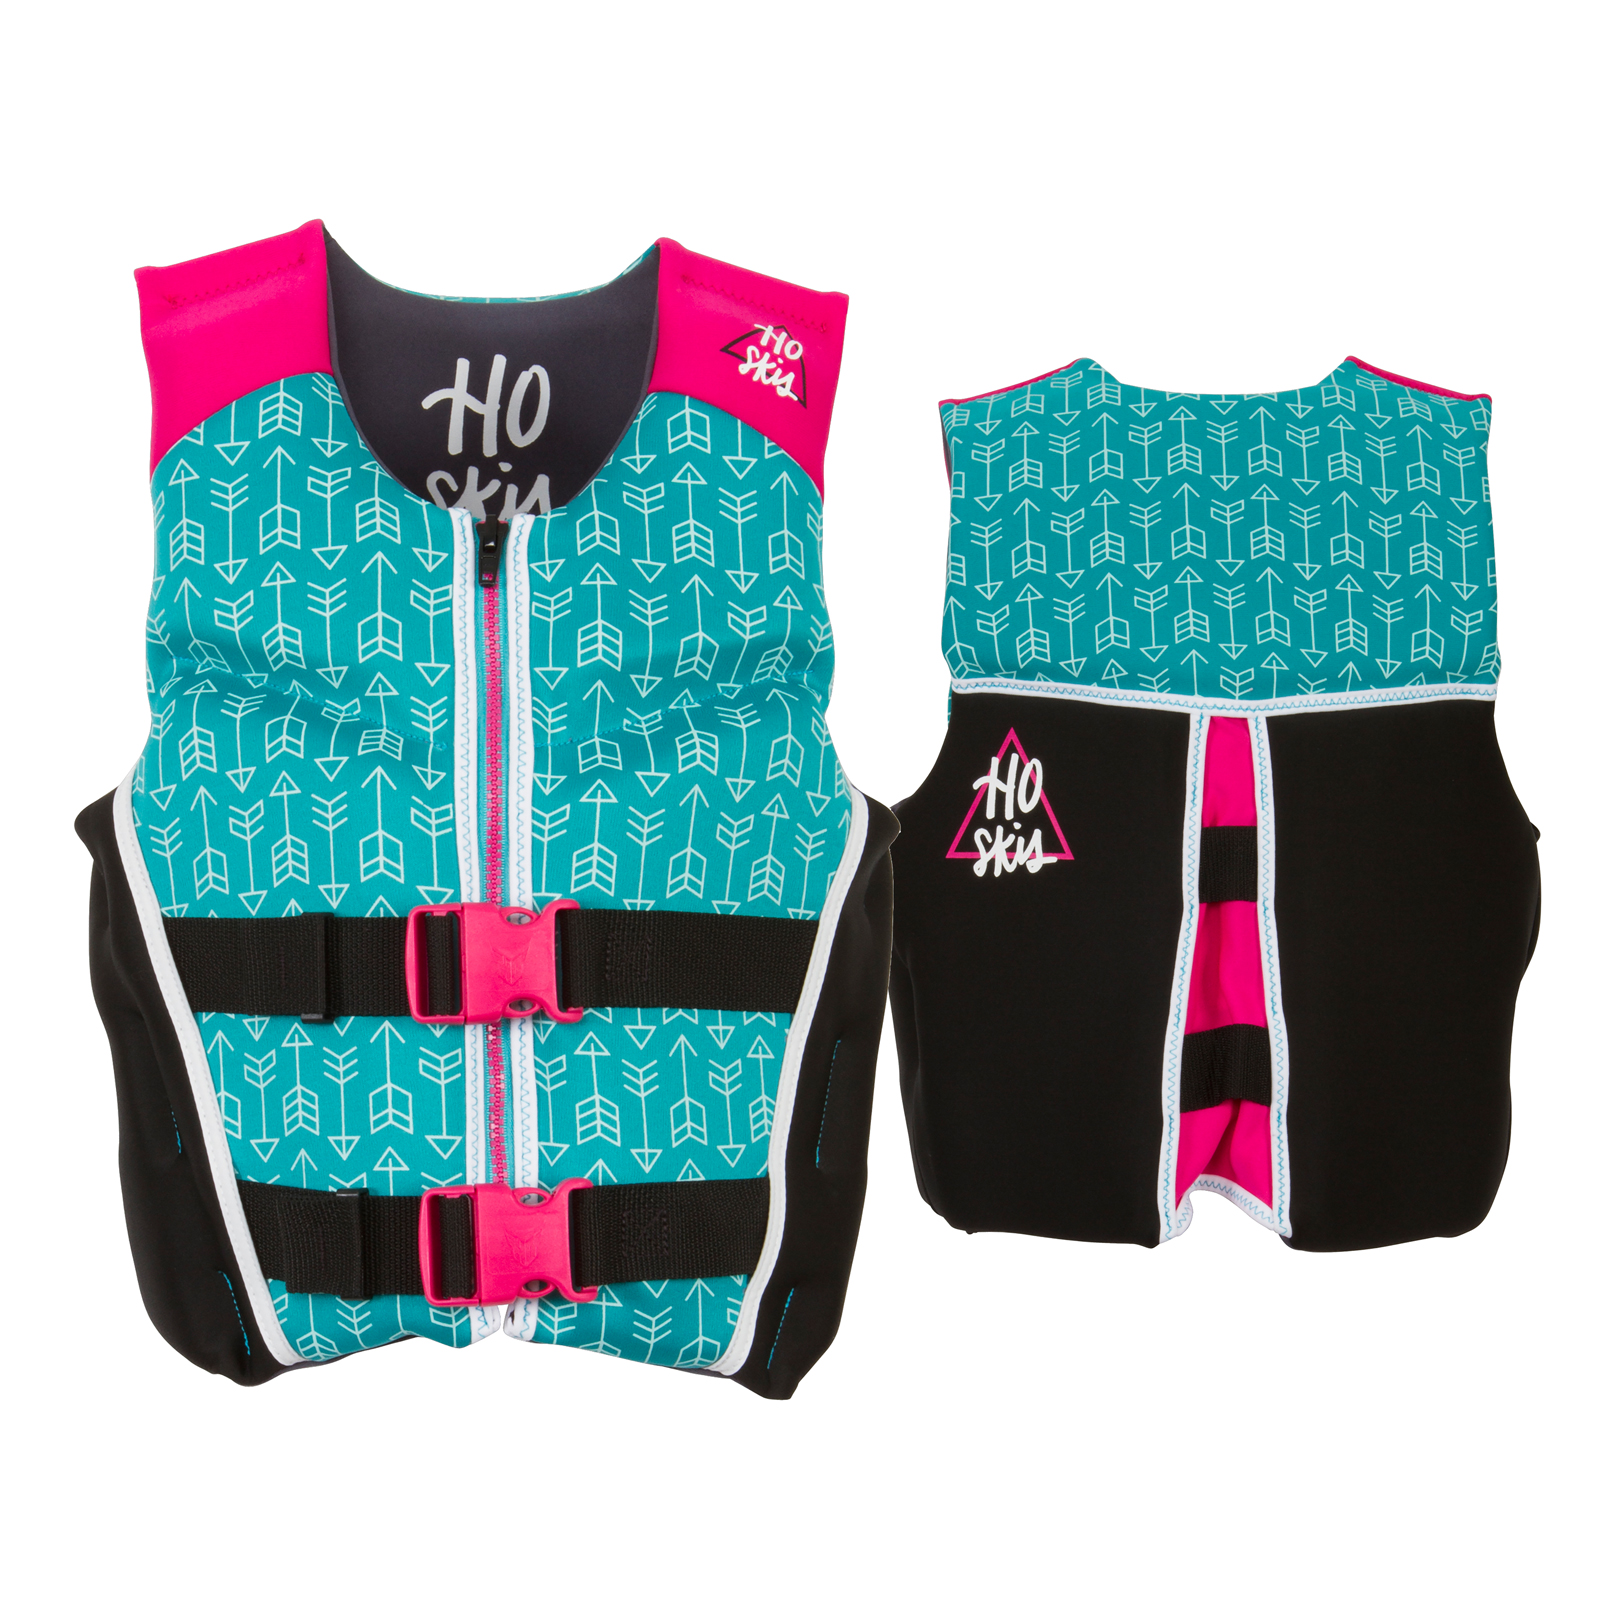 PURSUIT GIRL'S NEO LIFE VEST - 22-40KG HO SPORTS 2018